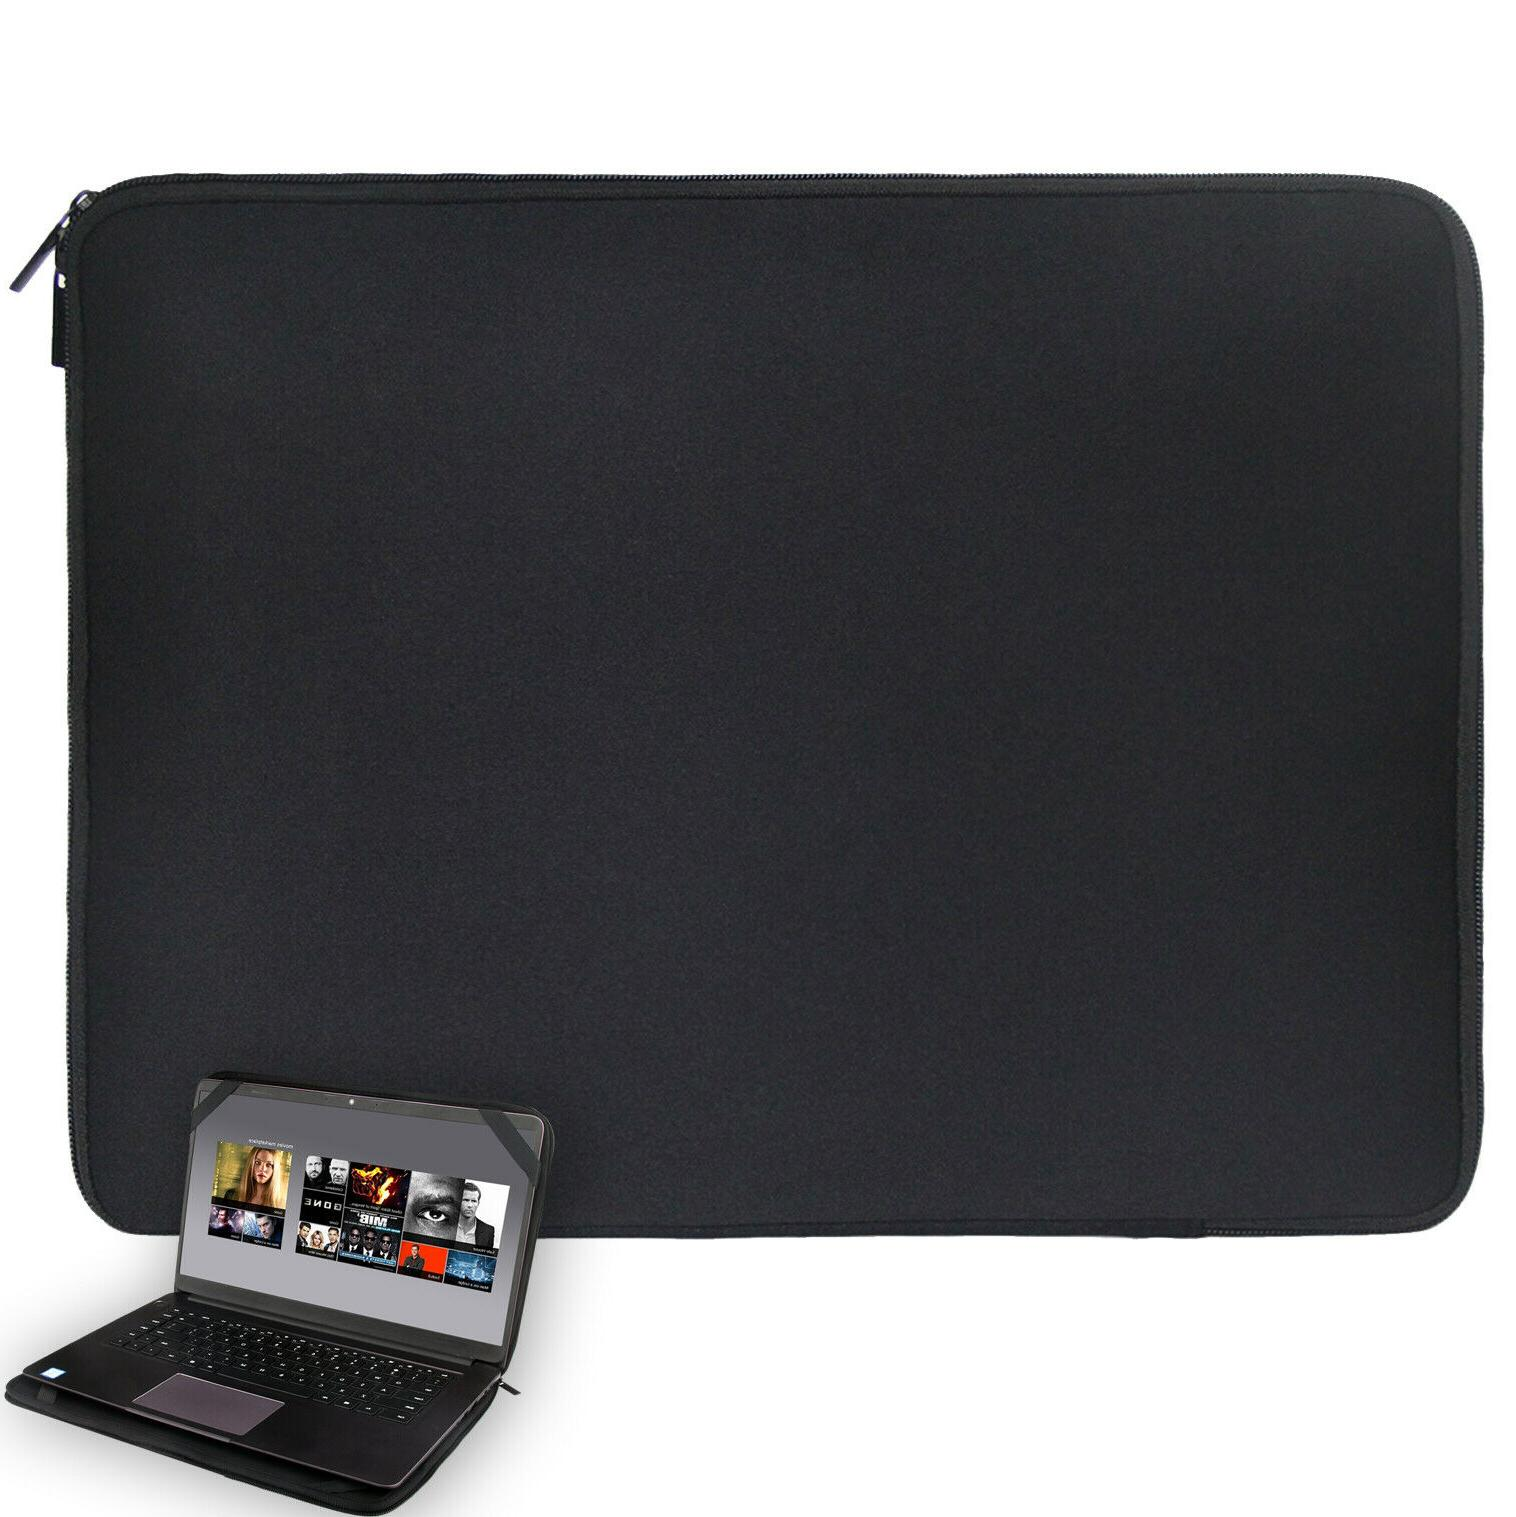 "Black 15 15.6""  Laptop Sleeve Bag Case Cover W/4 Straps For"